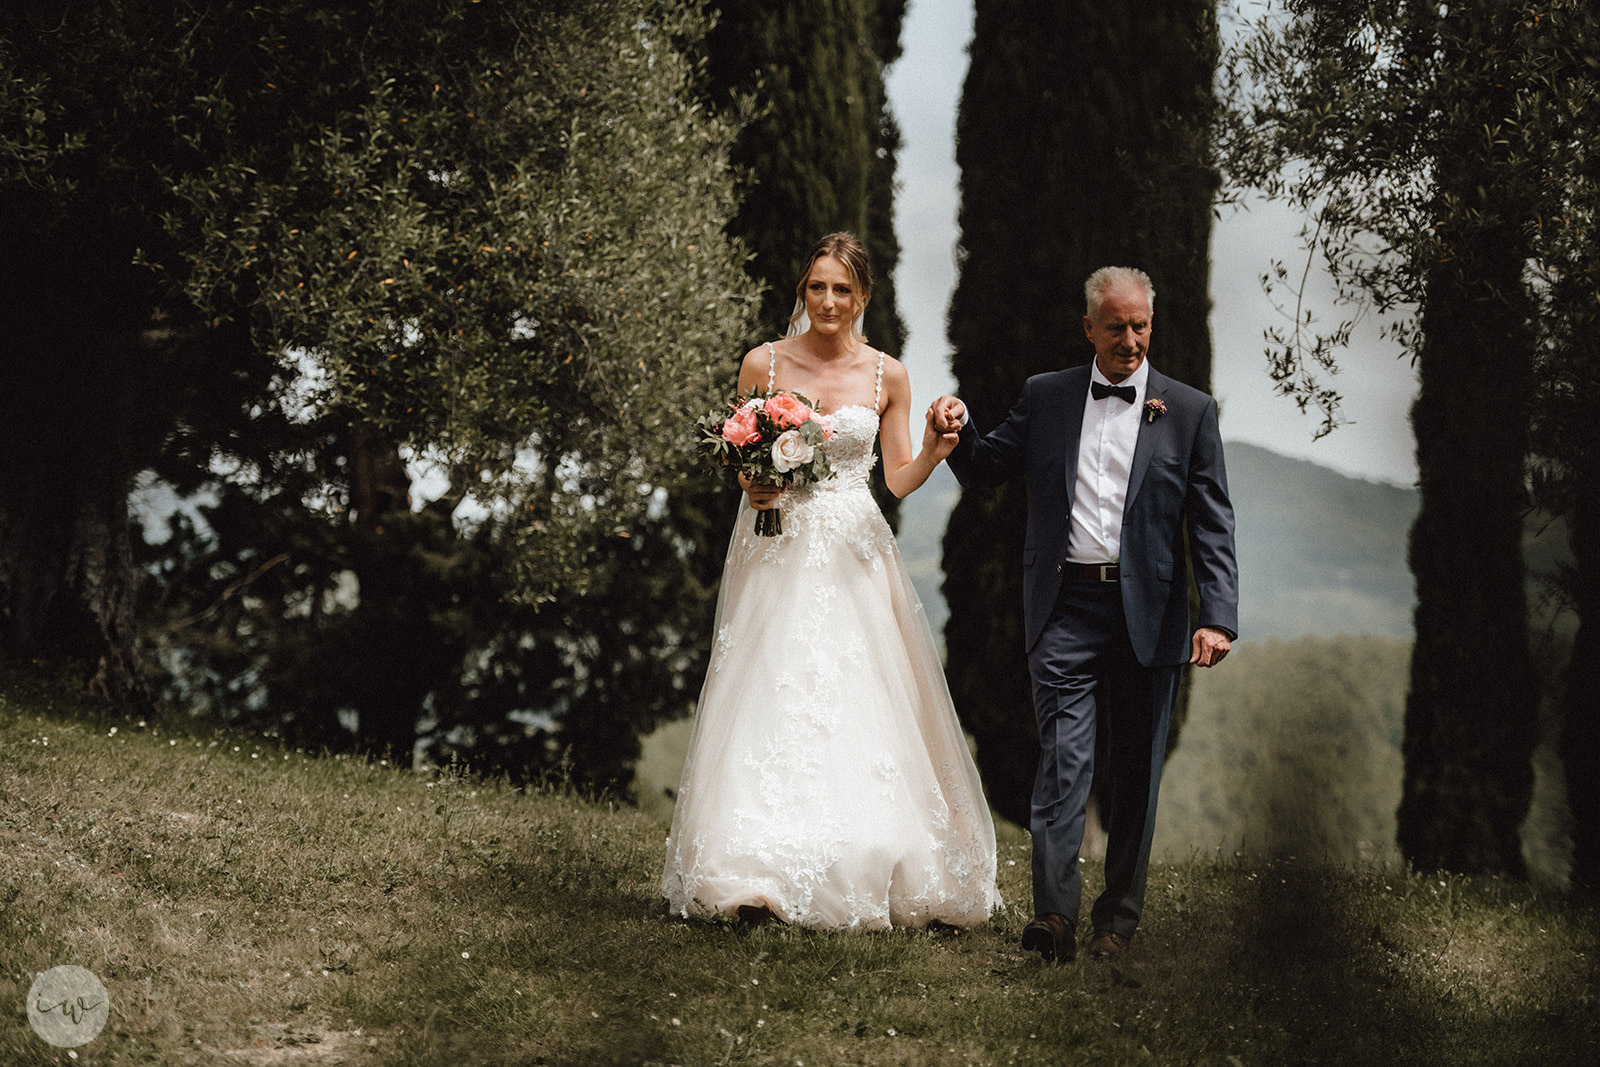 Wedding blessing in Umbria